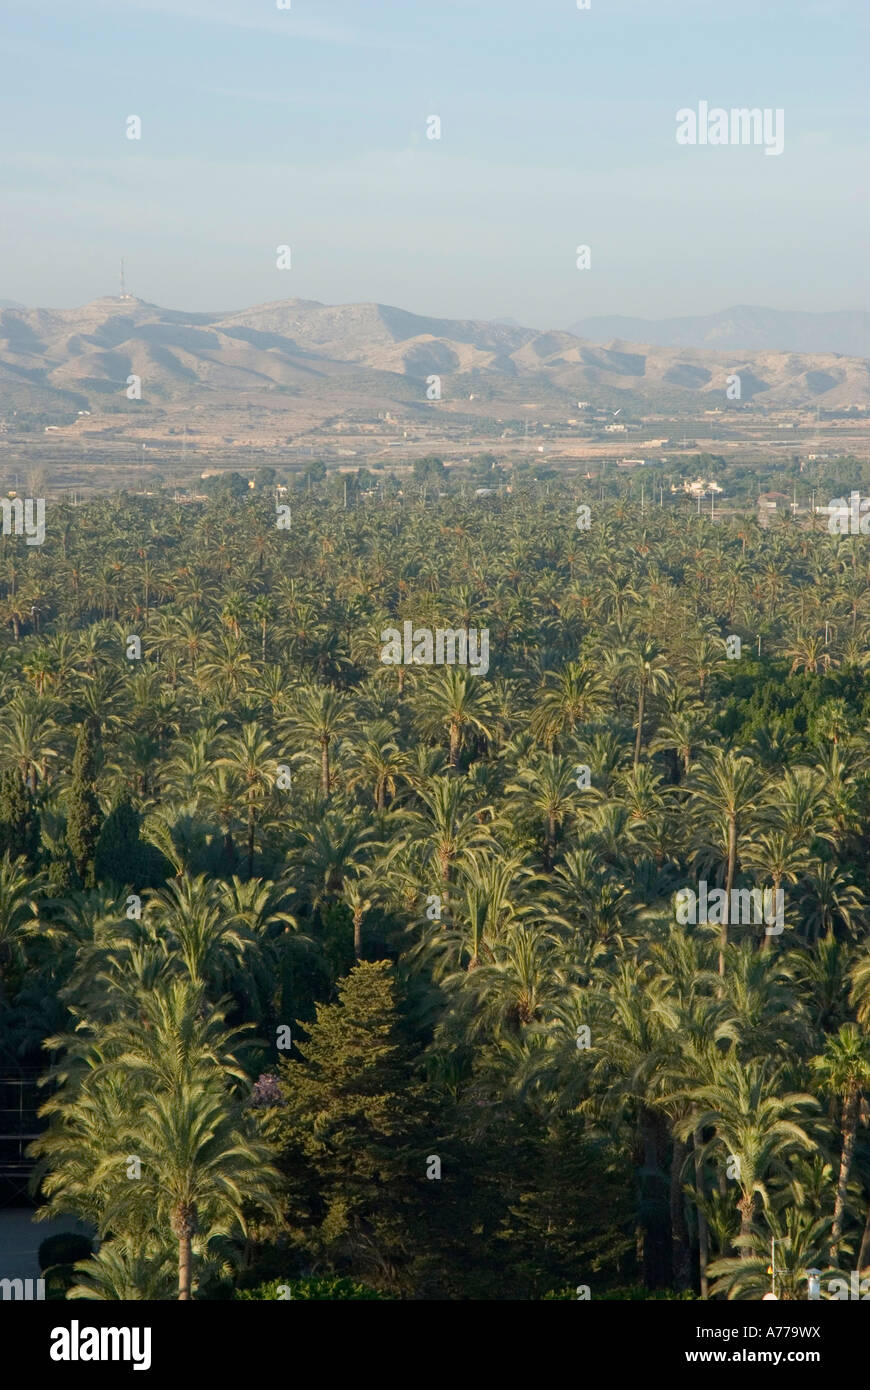 The Elx Palm Grove ELCHE Spain - Stock Image